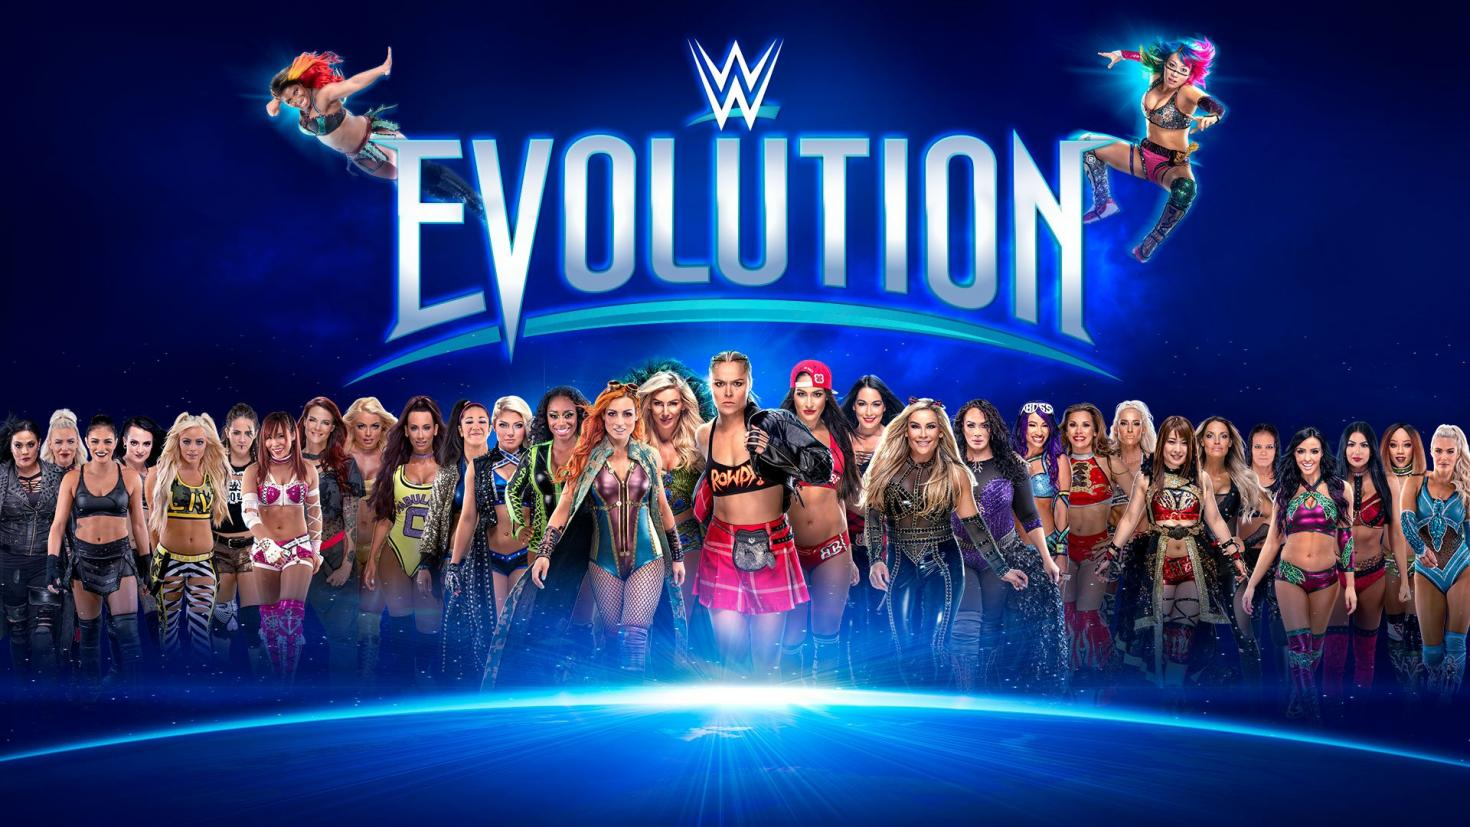 WWE Road to Evolution special to air next week 1470x827